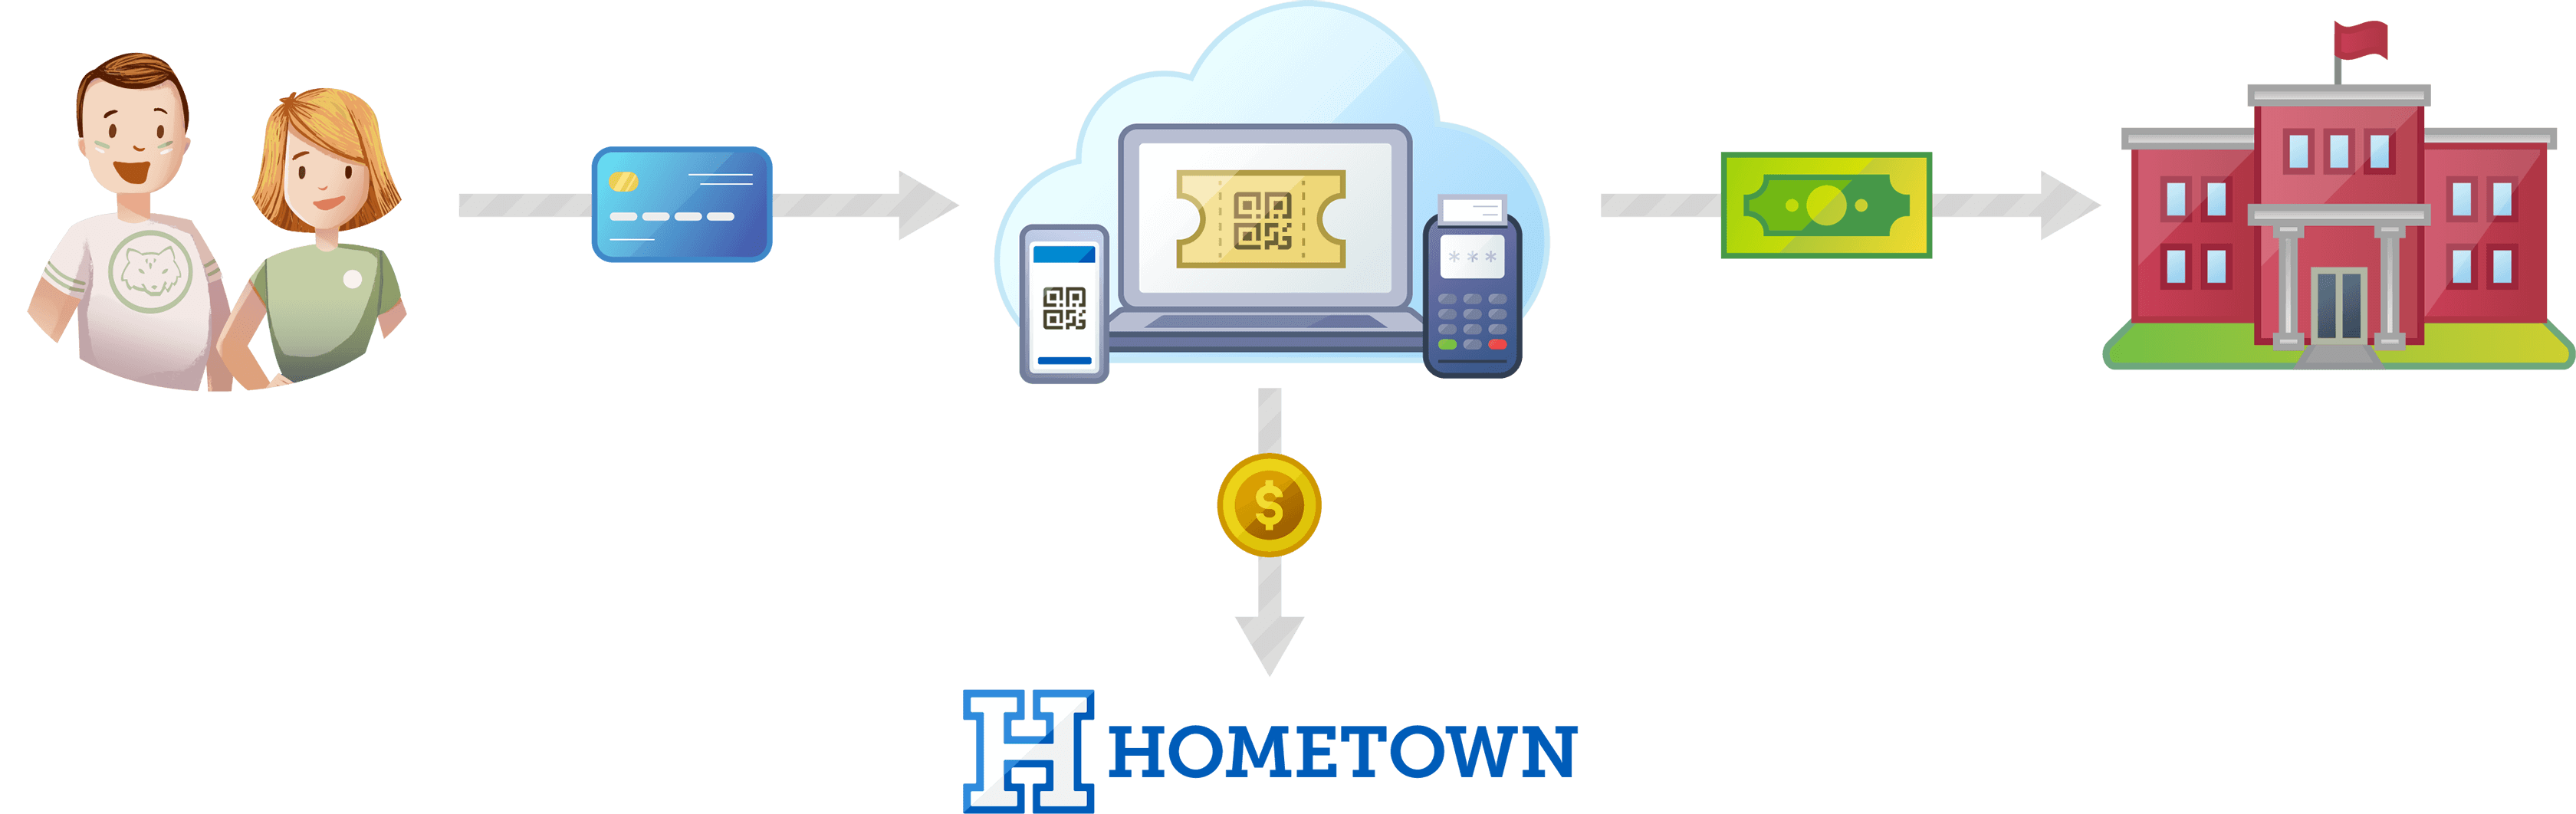 After tickets are purchased, revenue is deposited in the school's bank account with the assistance of Hometown Ticketing